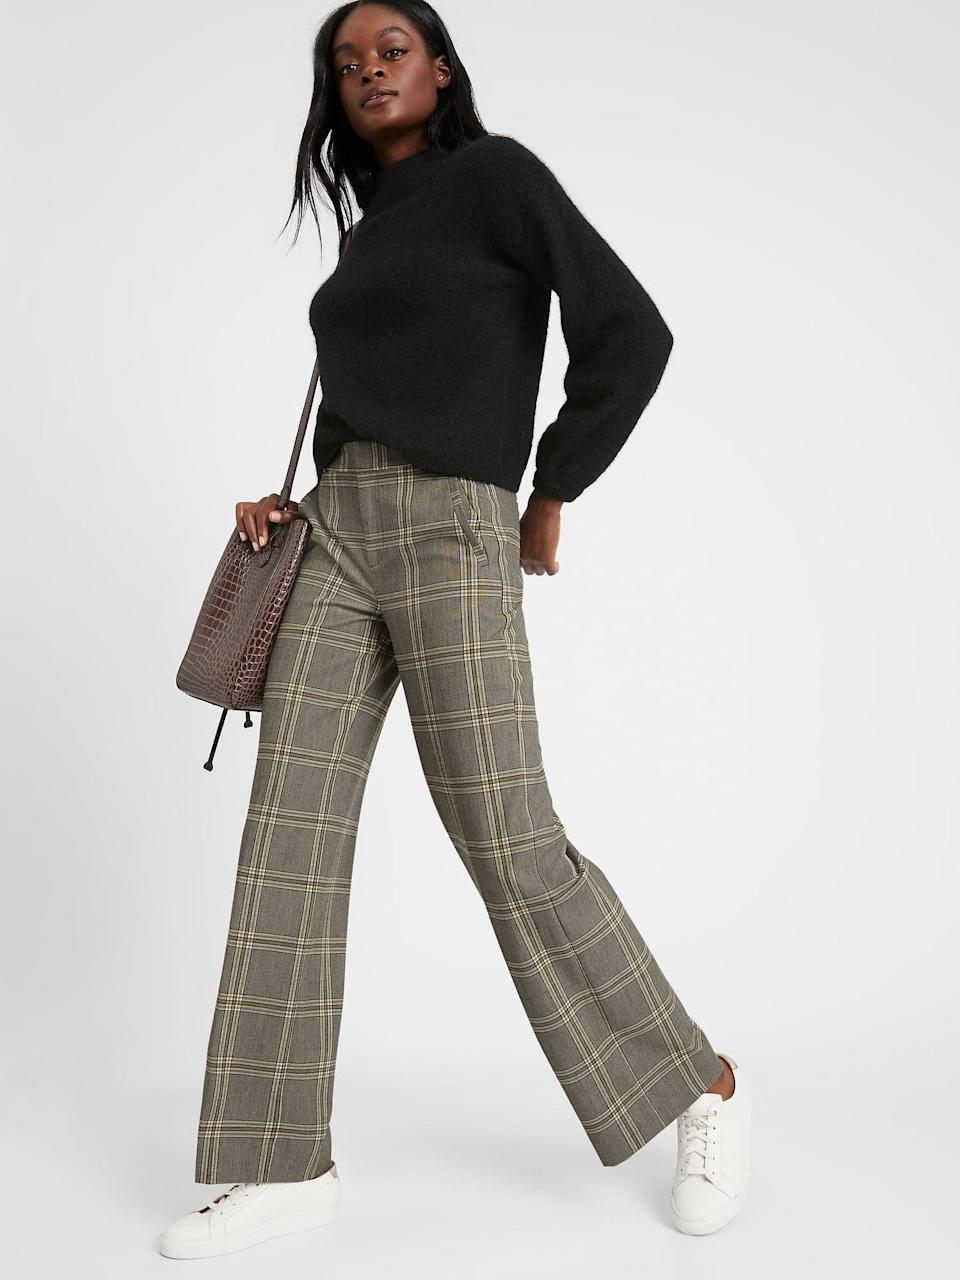 <p>Or try a leggier look with this <span>Banana Republic High-Rise Slim Wide-Leg Pant</span> ($67, originally $110)!</p>